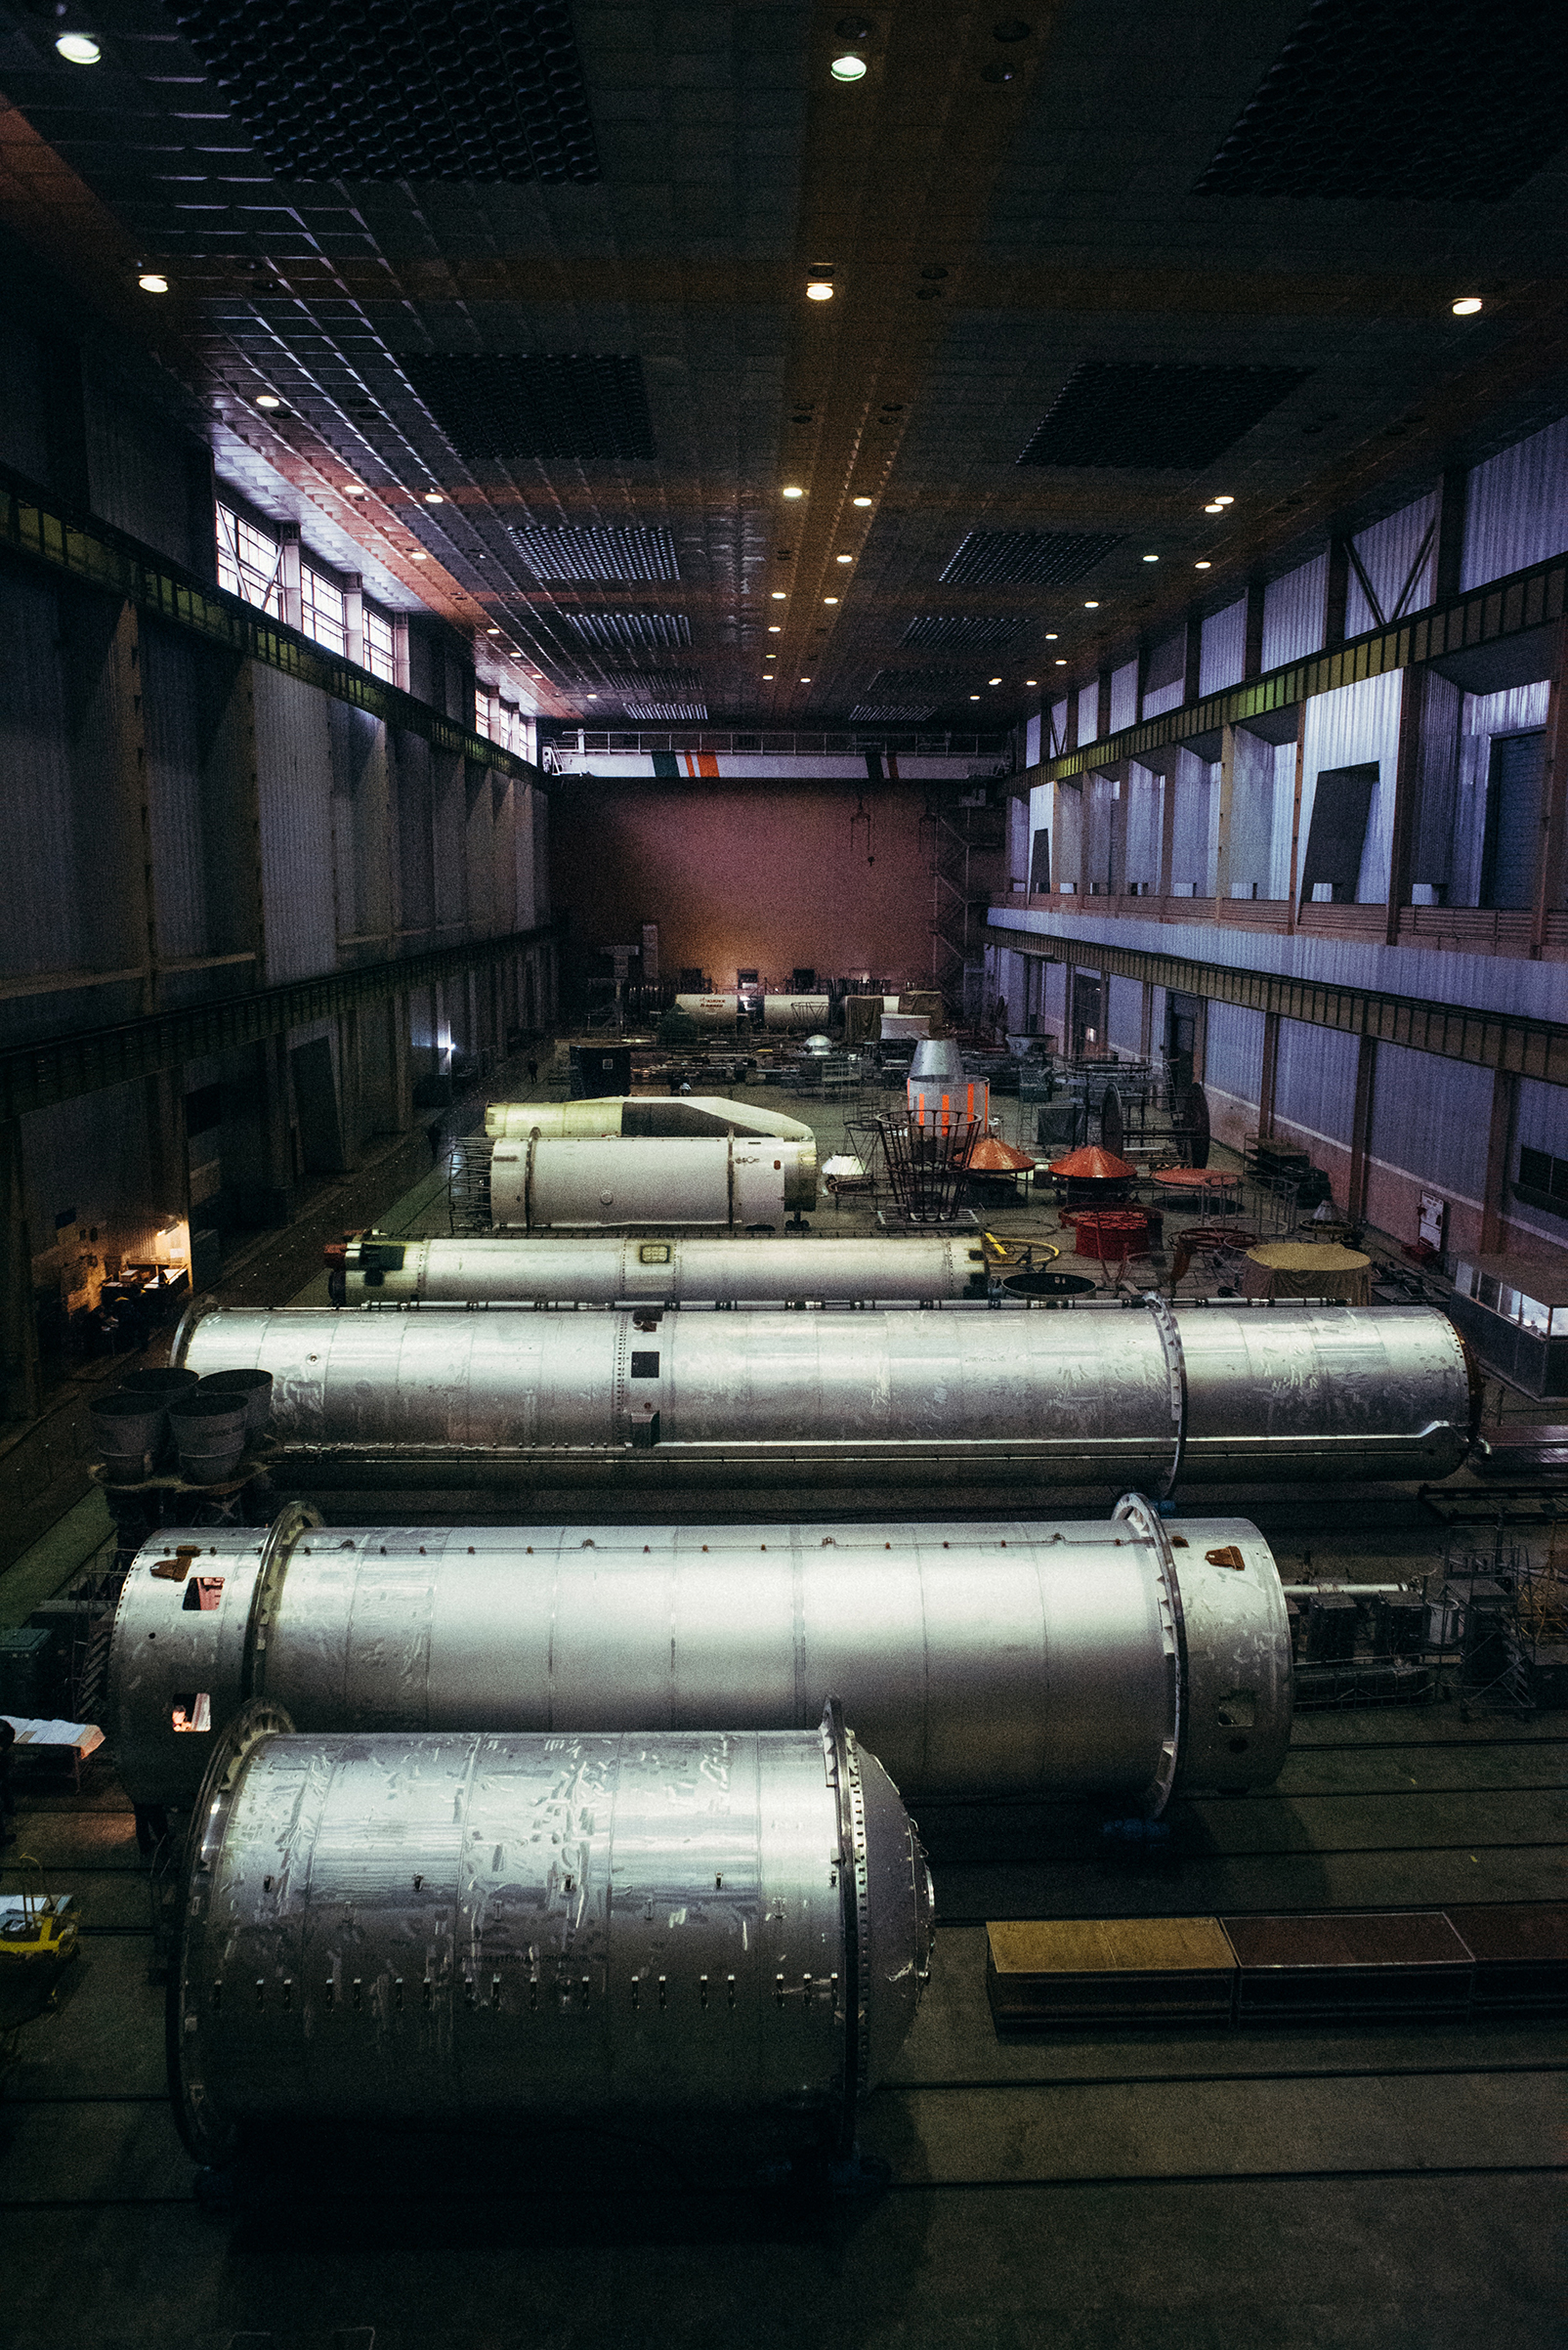 Rocket parts await assembly at Workshop 97 of the Yuzhmash plant